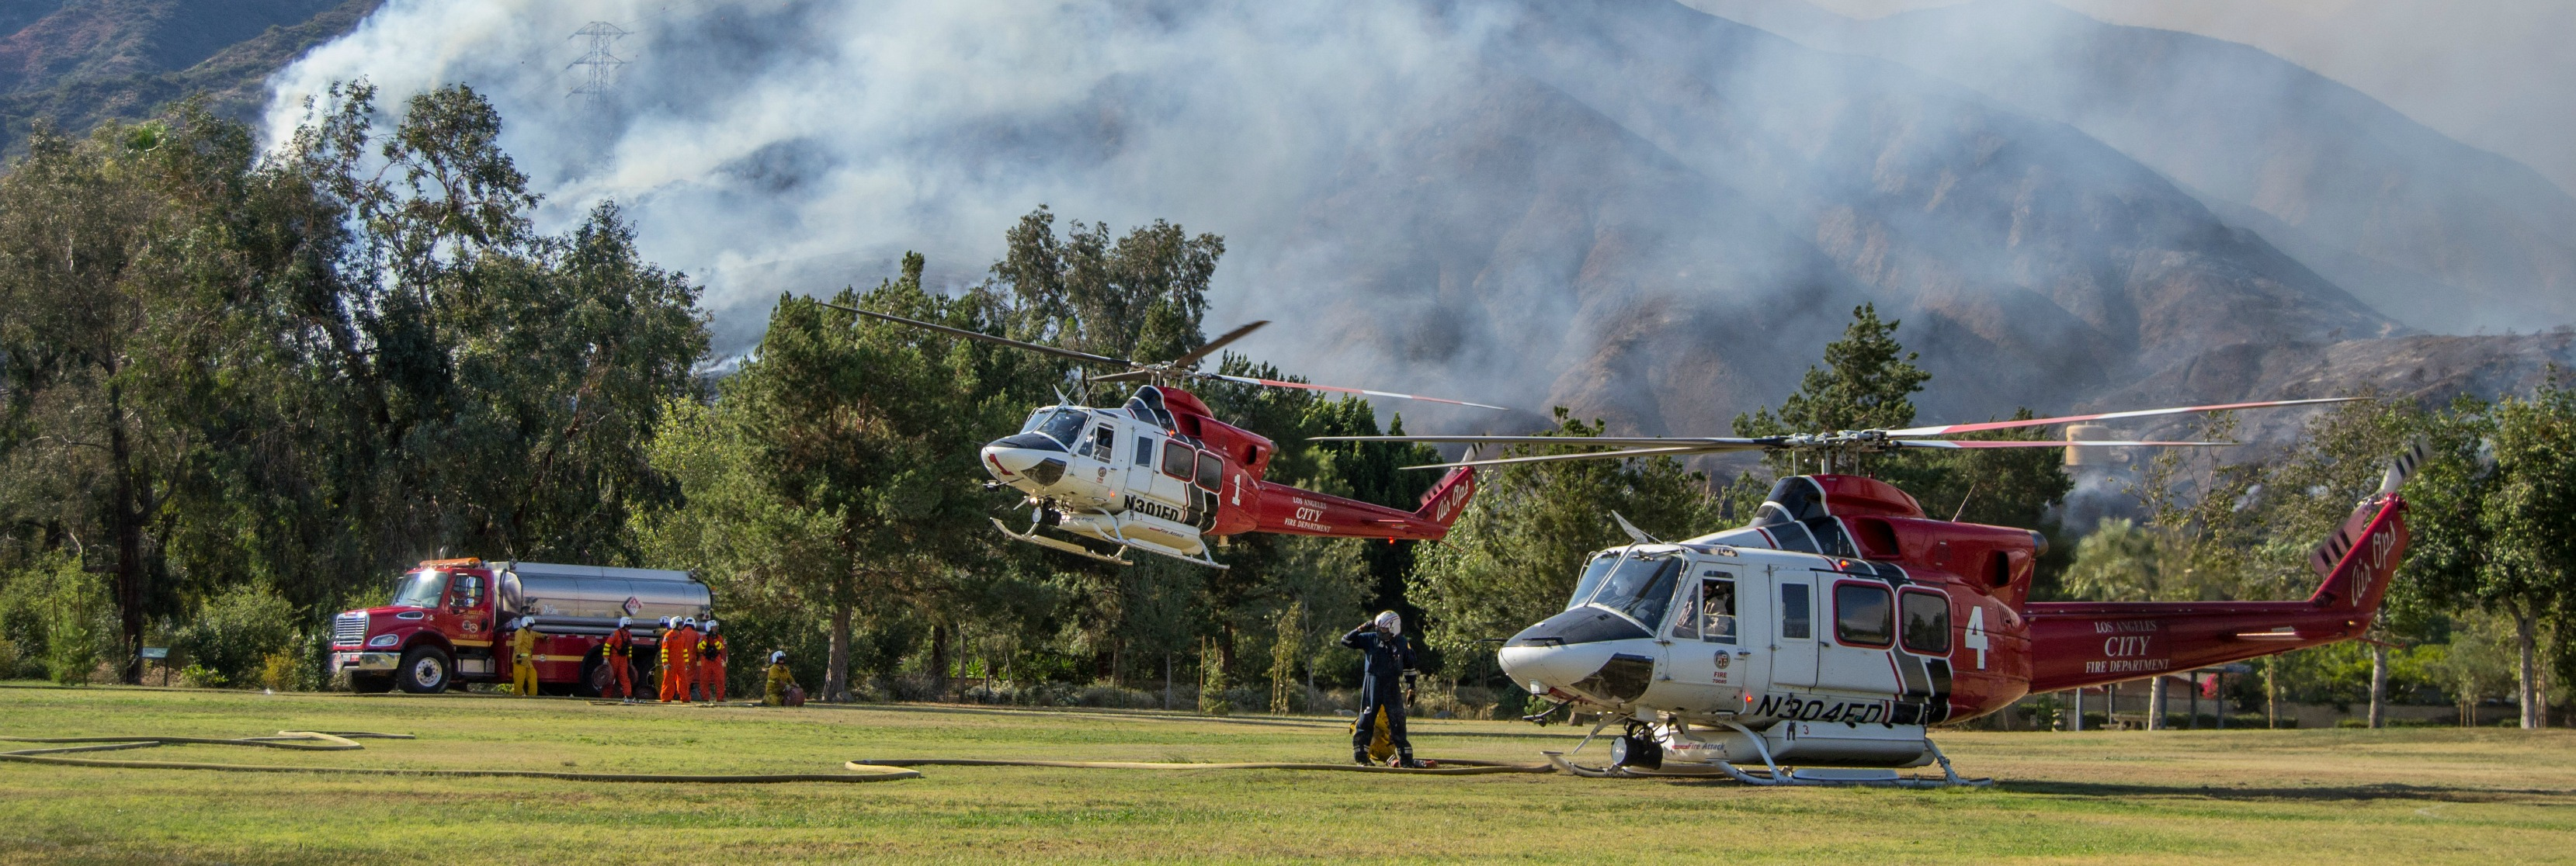 LAFD Air Ops refilling during the San Gabriel Complex Fire 6.20.16